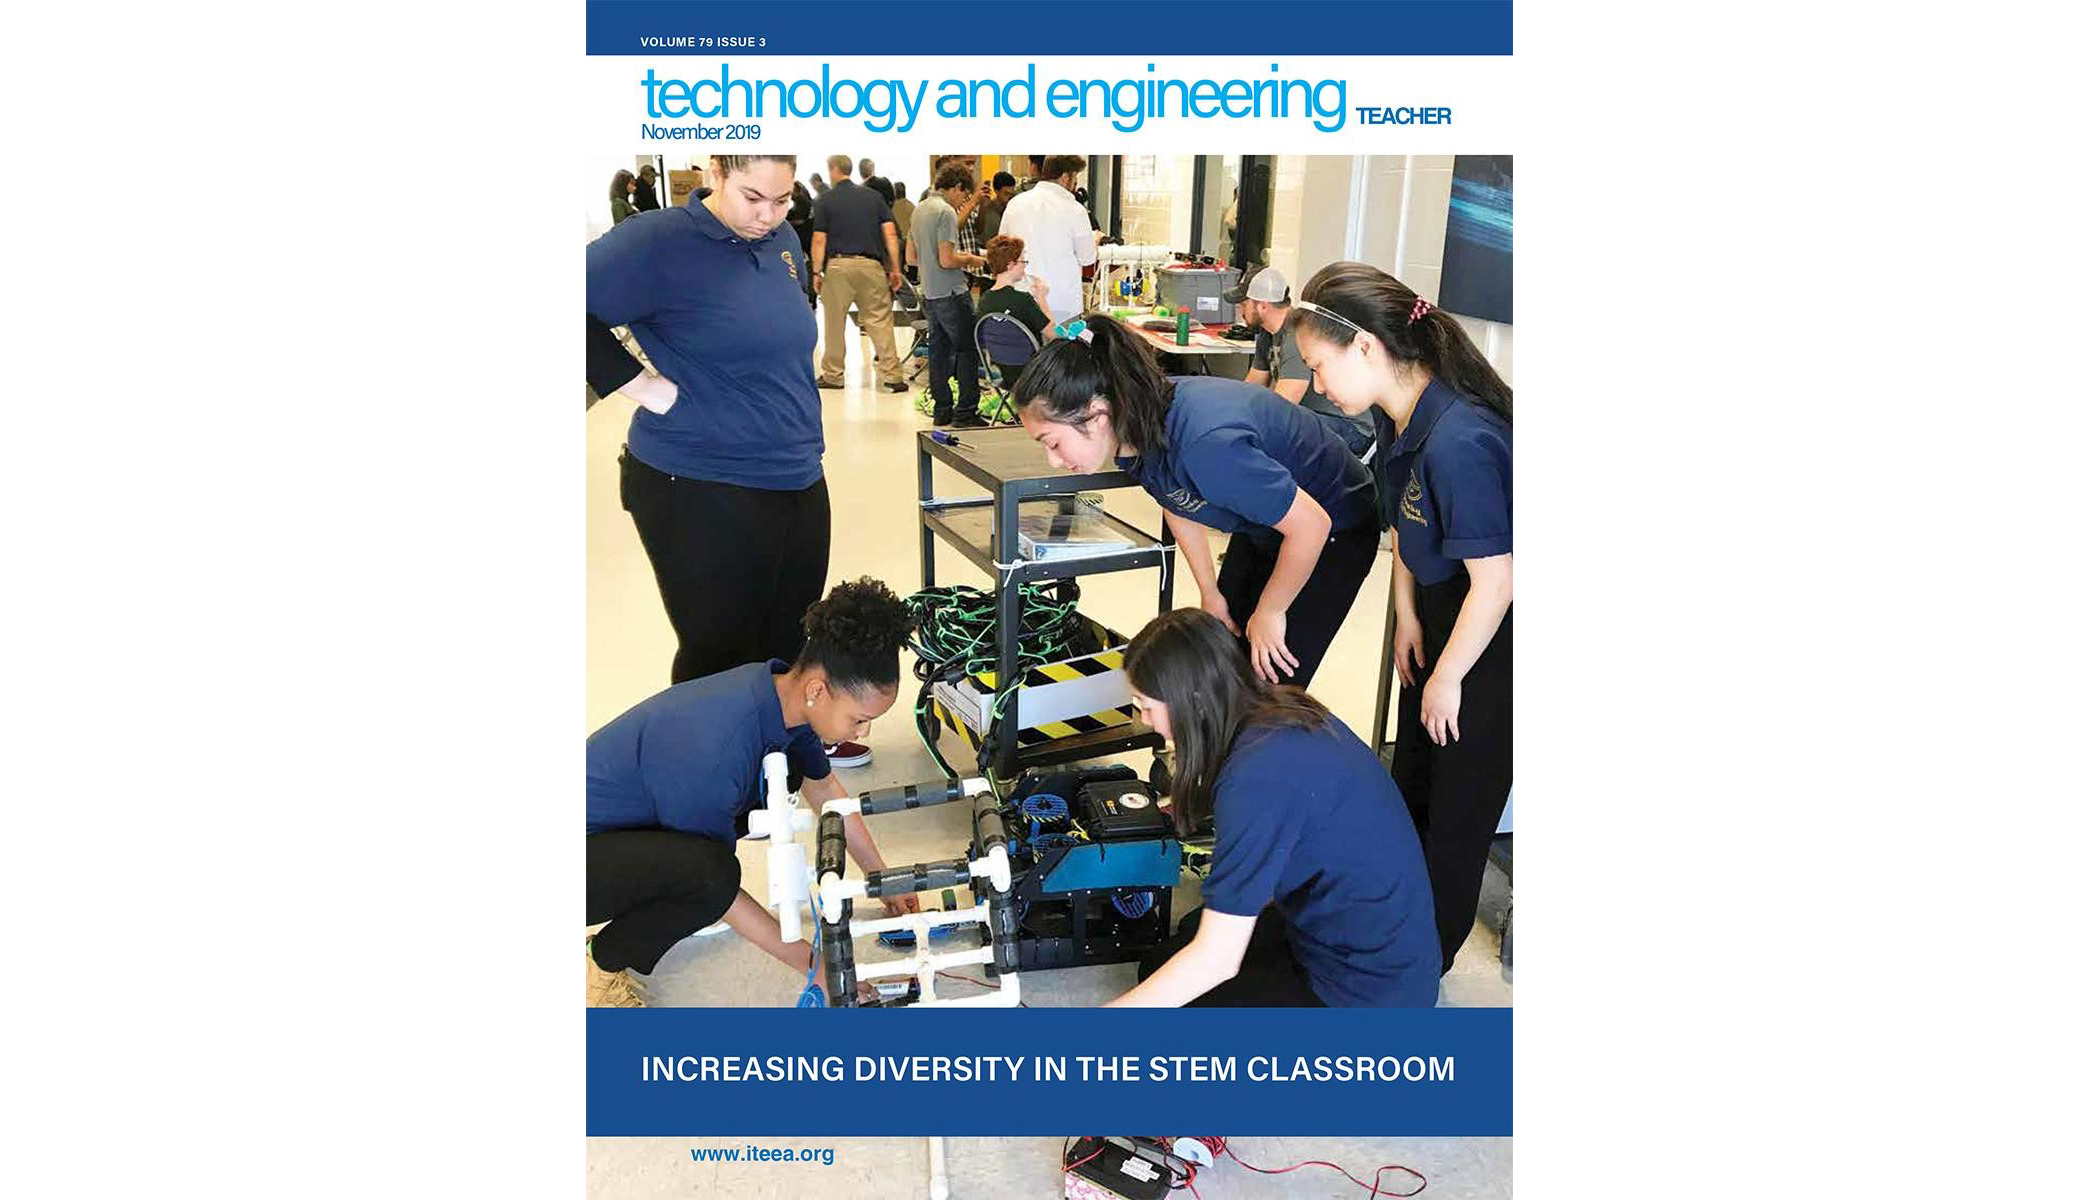 Technology and Engineering Teacher - What's In It? November 2019